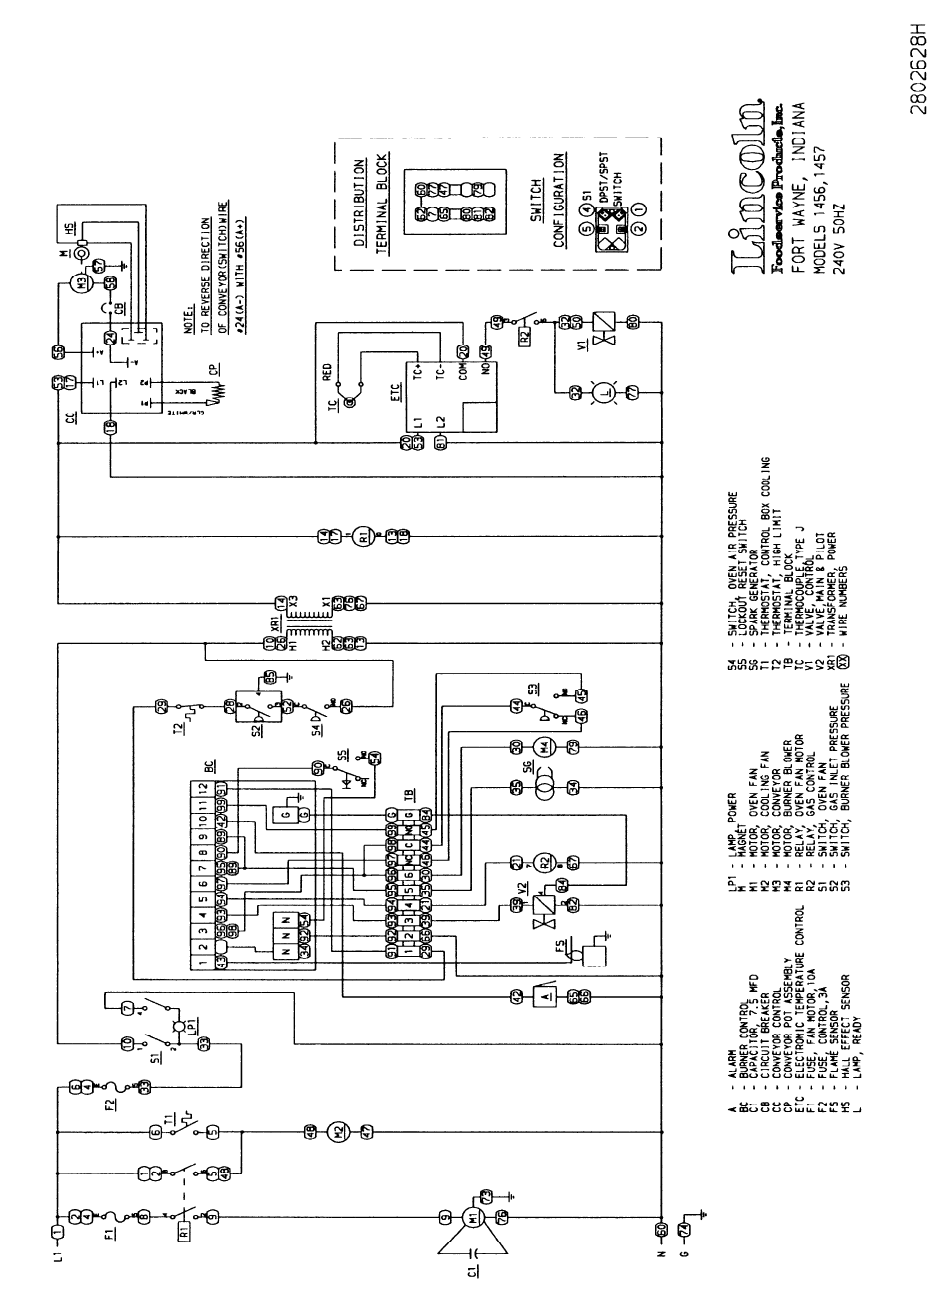 Lincoln 1400 Series Users Manual Impinger I Advantage Service Dom Oven Wiring Diagram Intl 9